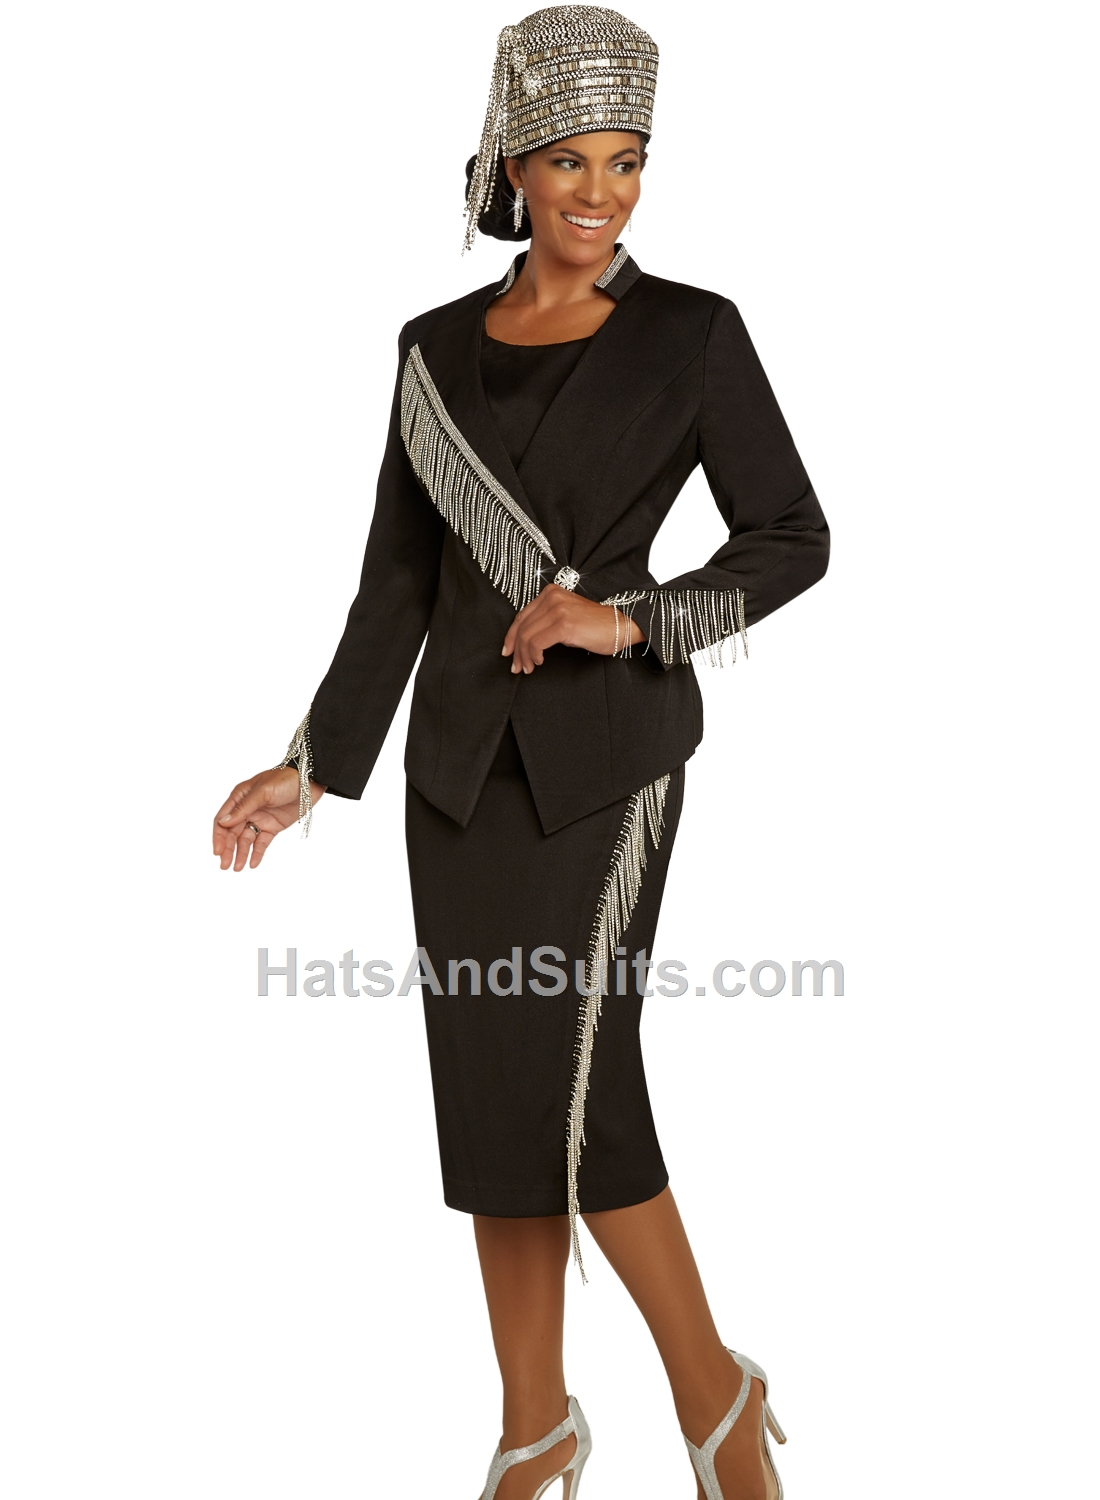 11852 Donna Vinci 2 Pc. Jacket & Skirt Set. SP20